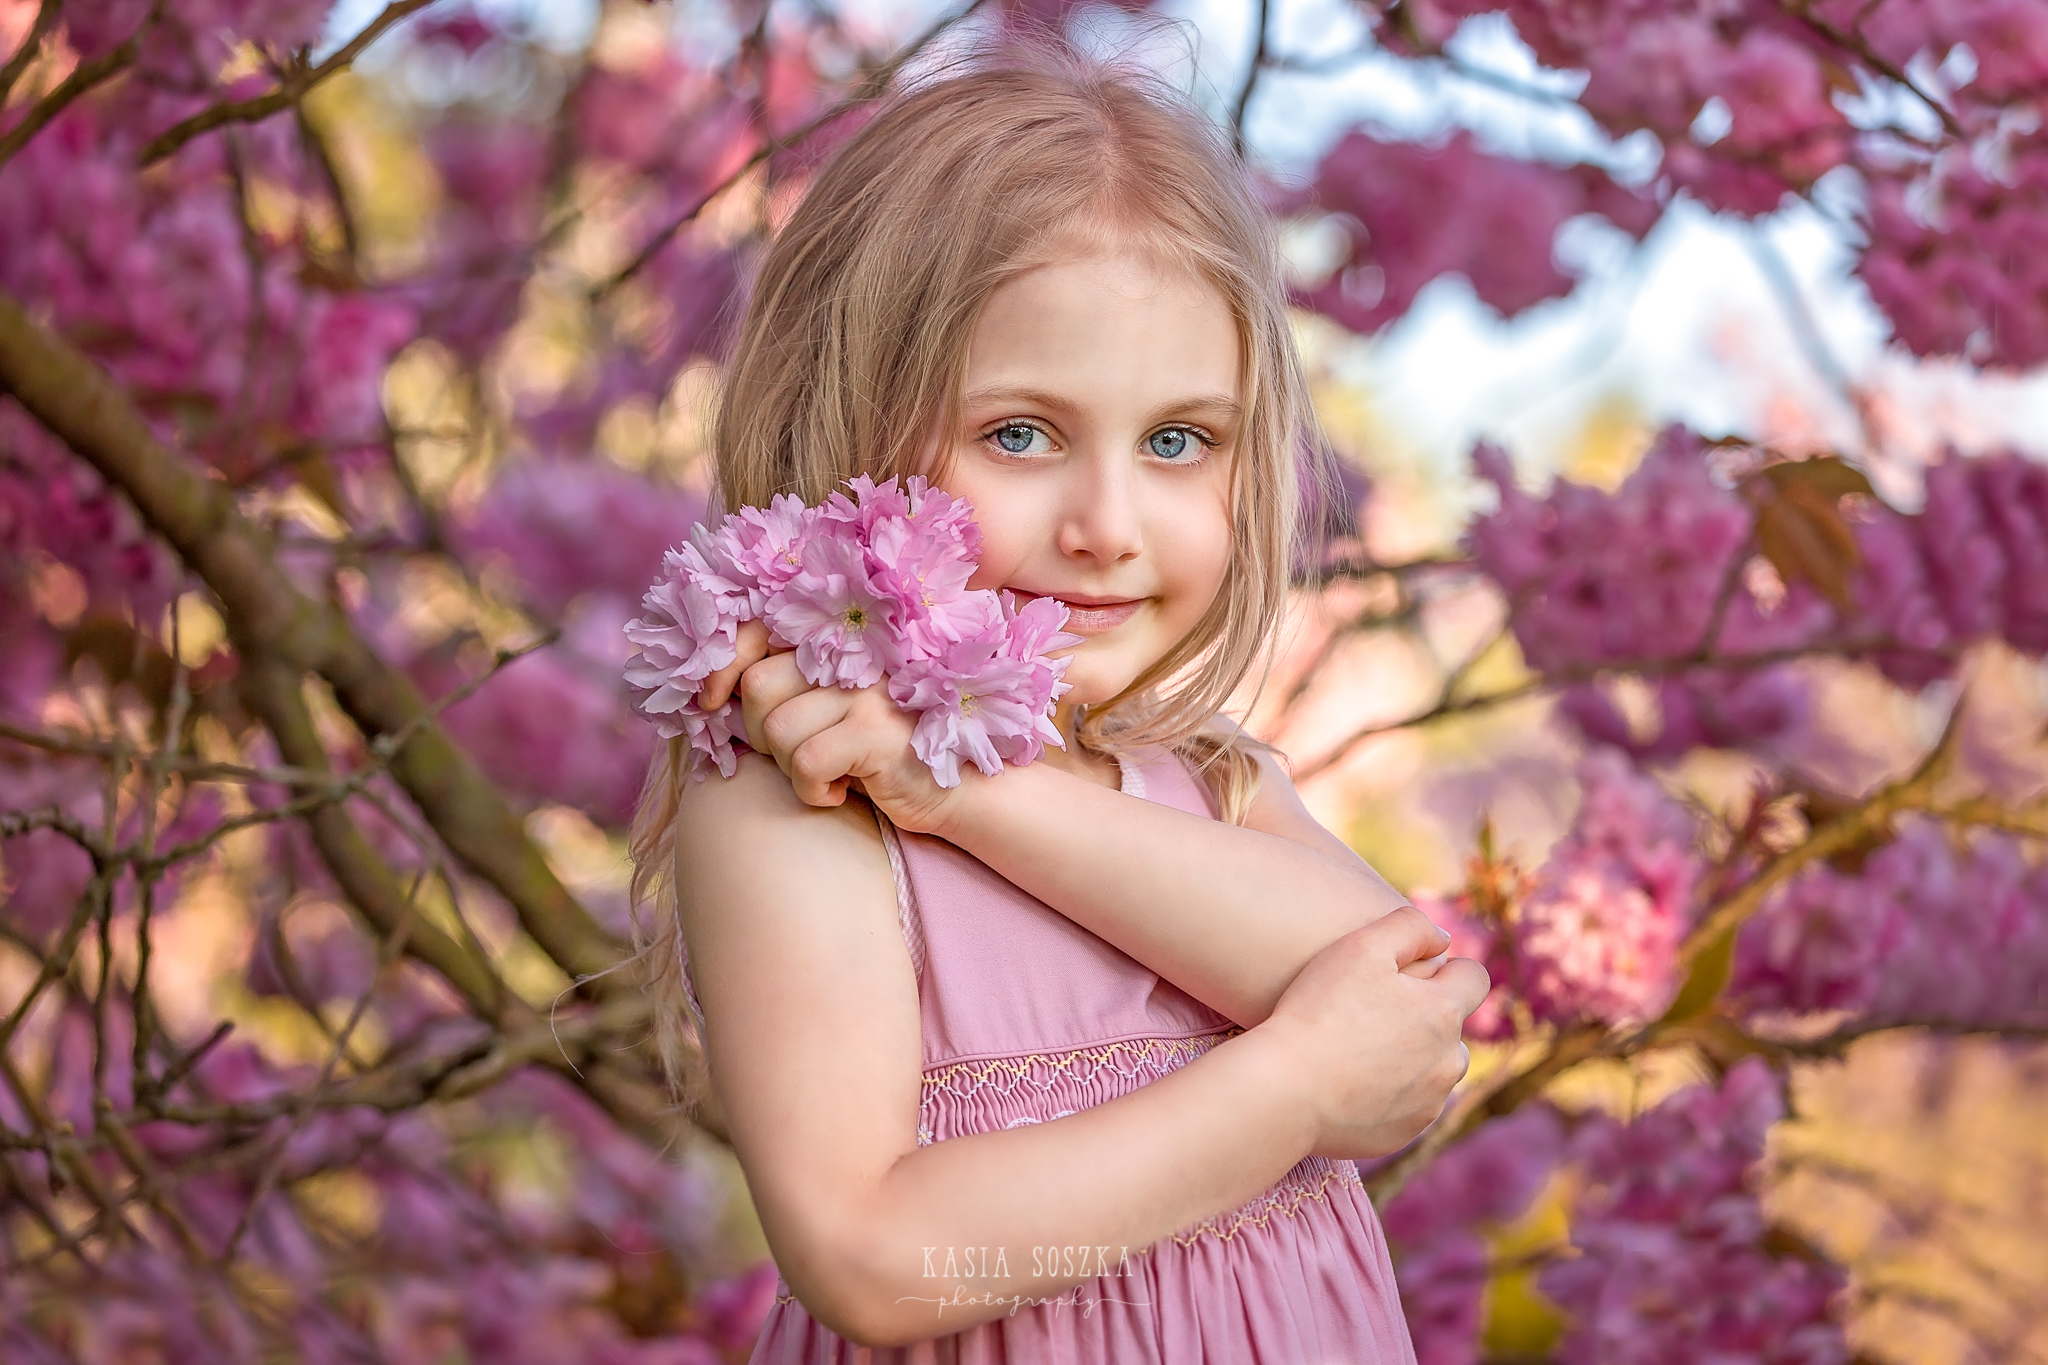 Leeds child photography Bradford child session York children photography: pretty little blond girl in a pink dress under blossoming cherry tree